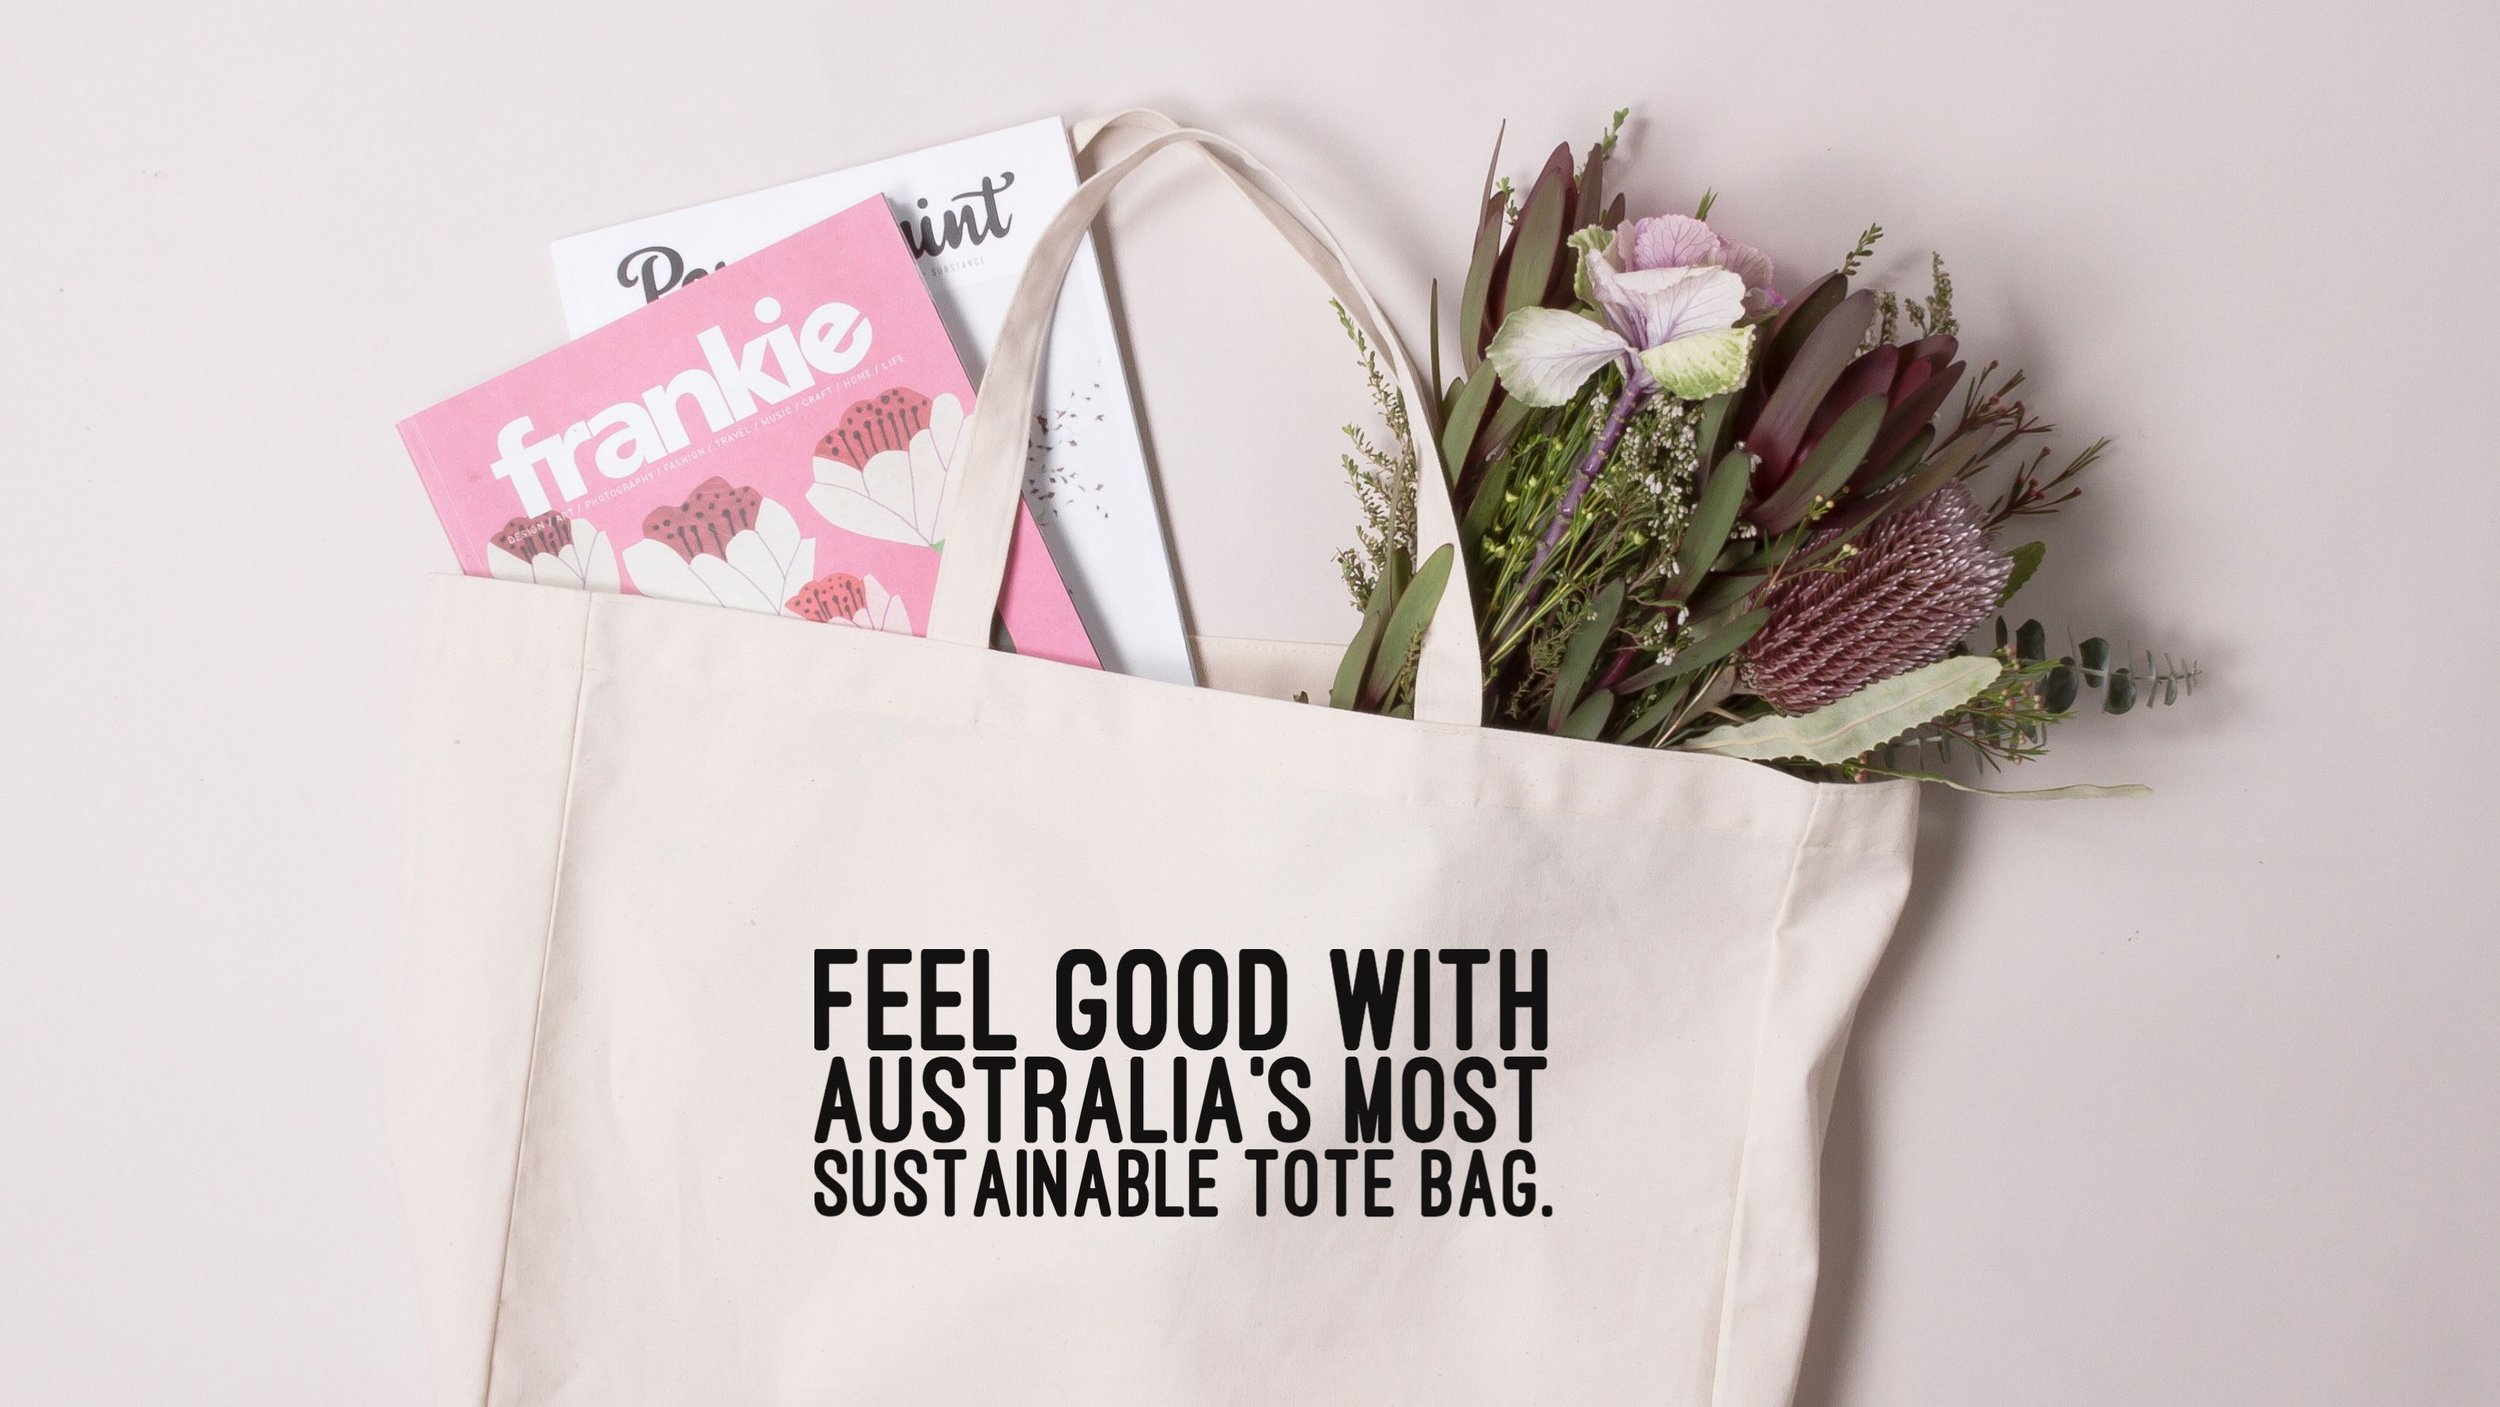 FeelGood-Ecotote.jpg